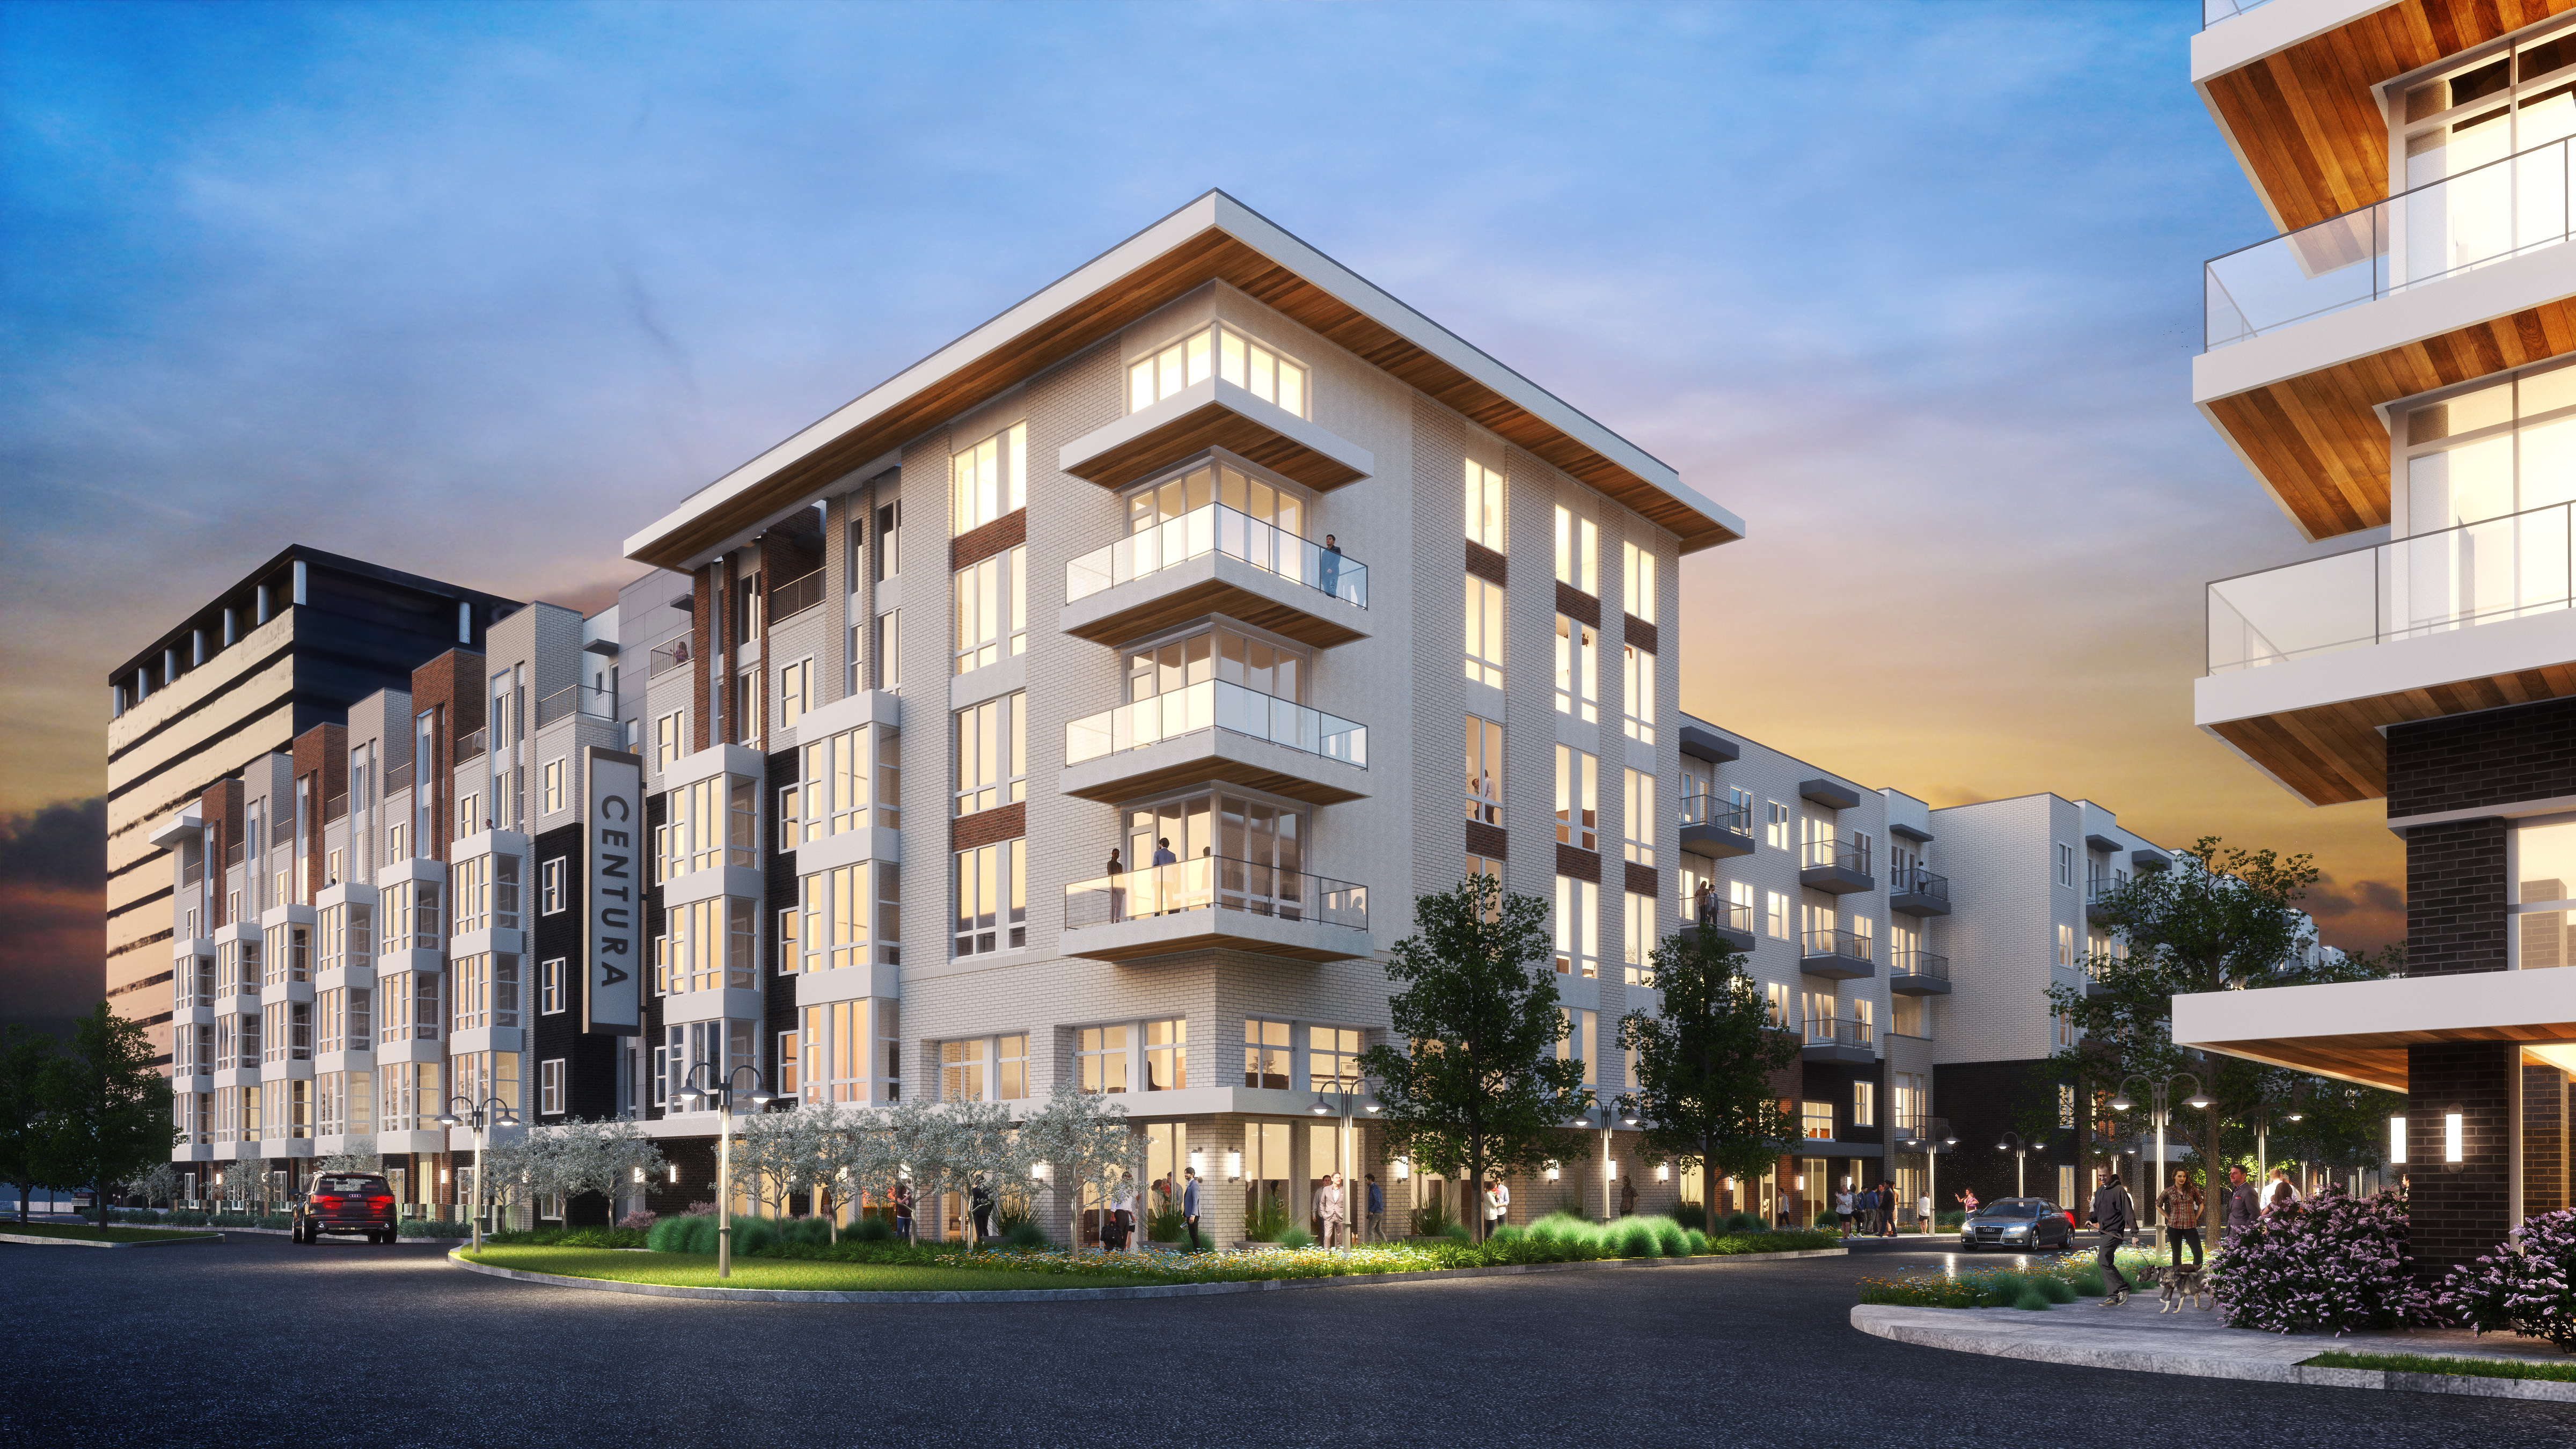 More Apartments On The Way In Farmers Branch Near Galleria